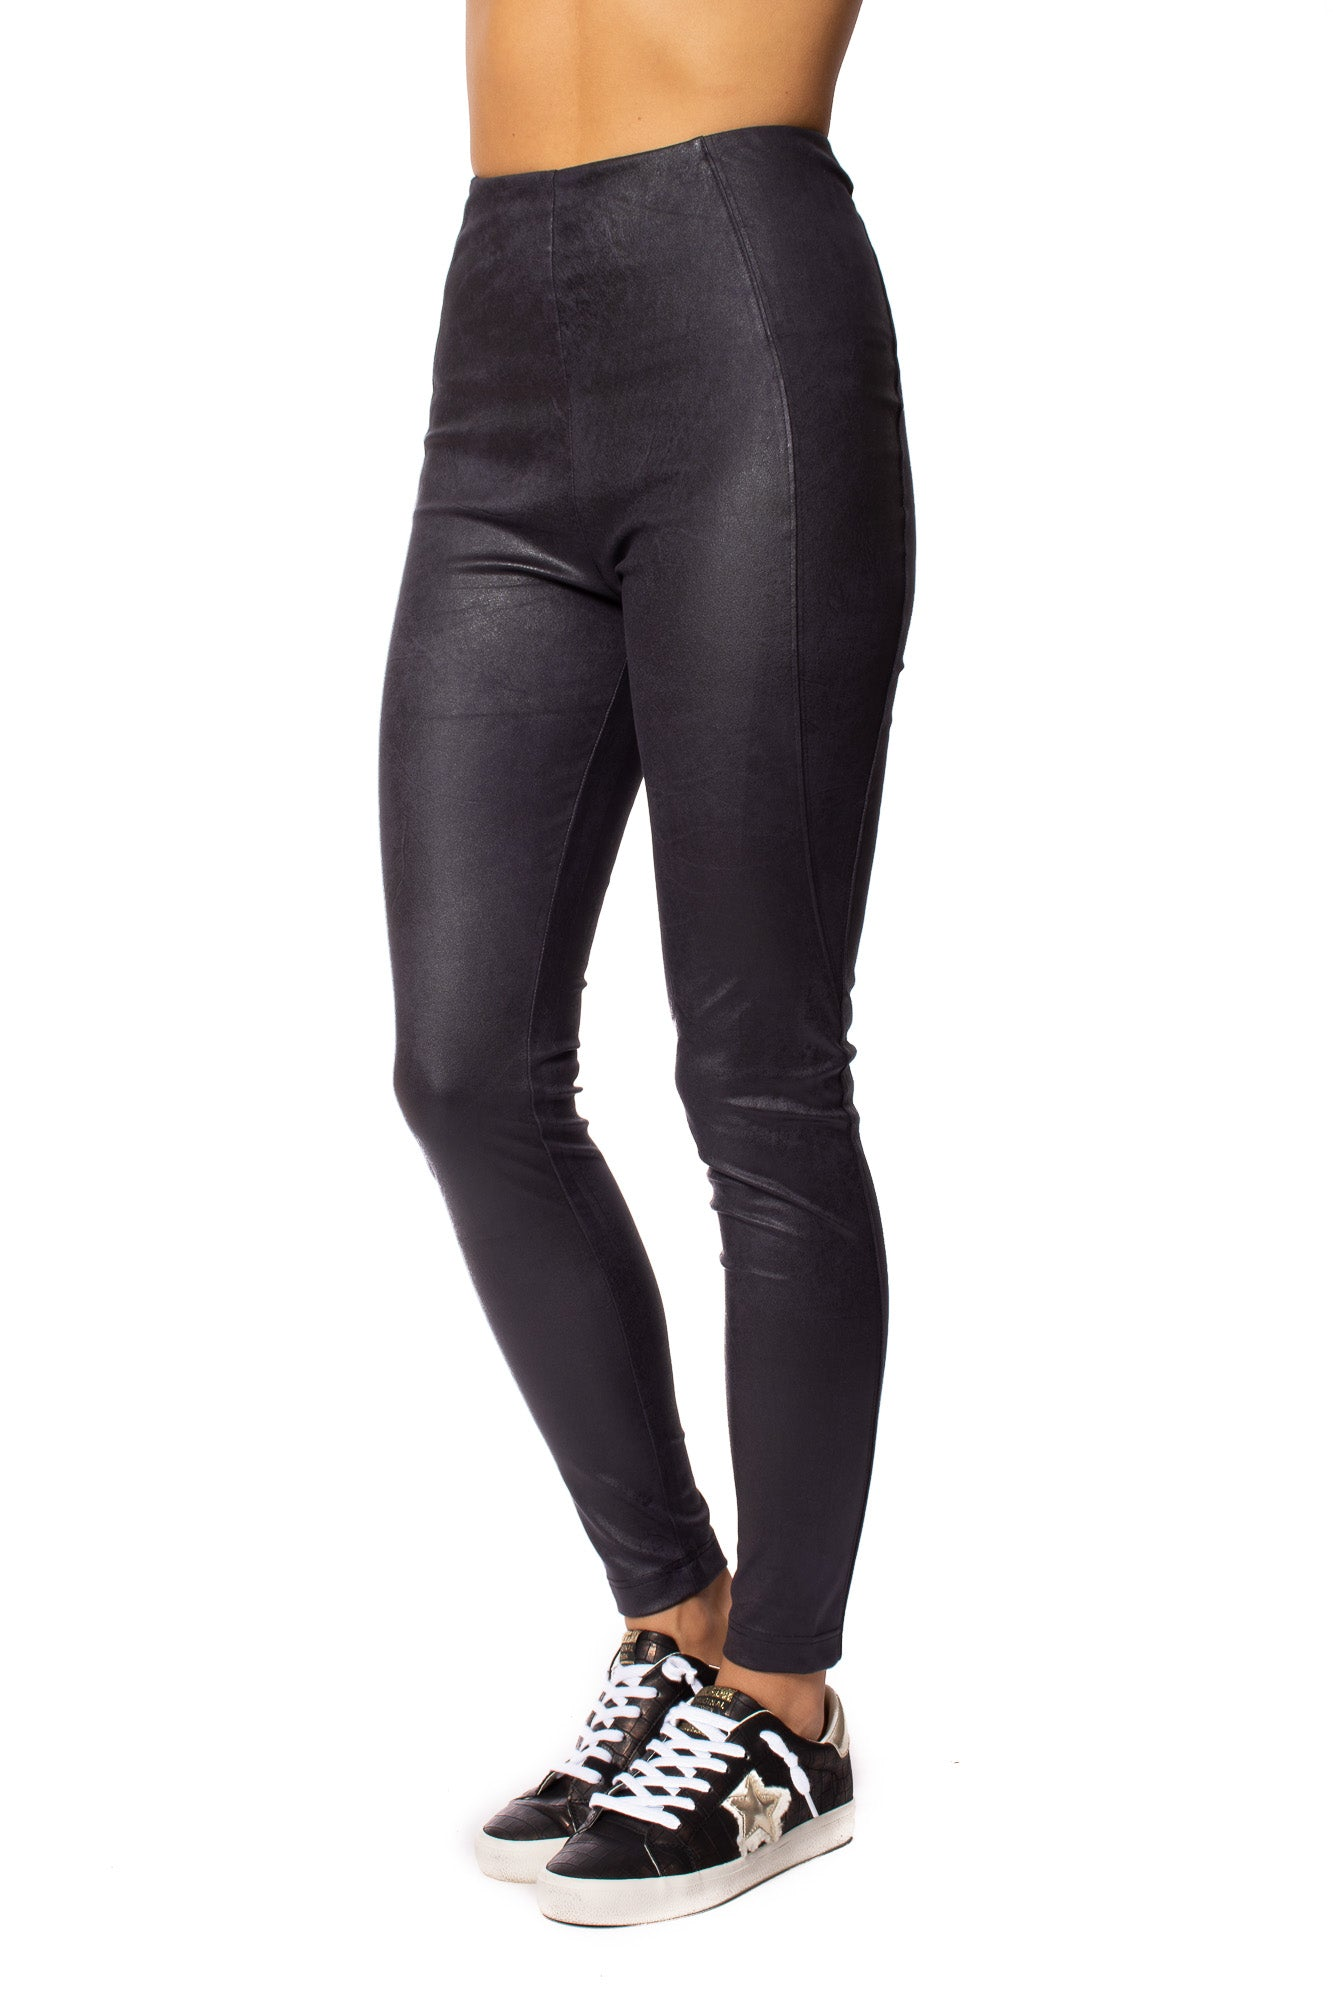 Lysse - Lysse Black Leggings (2651, Black)